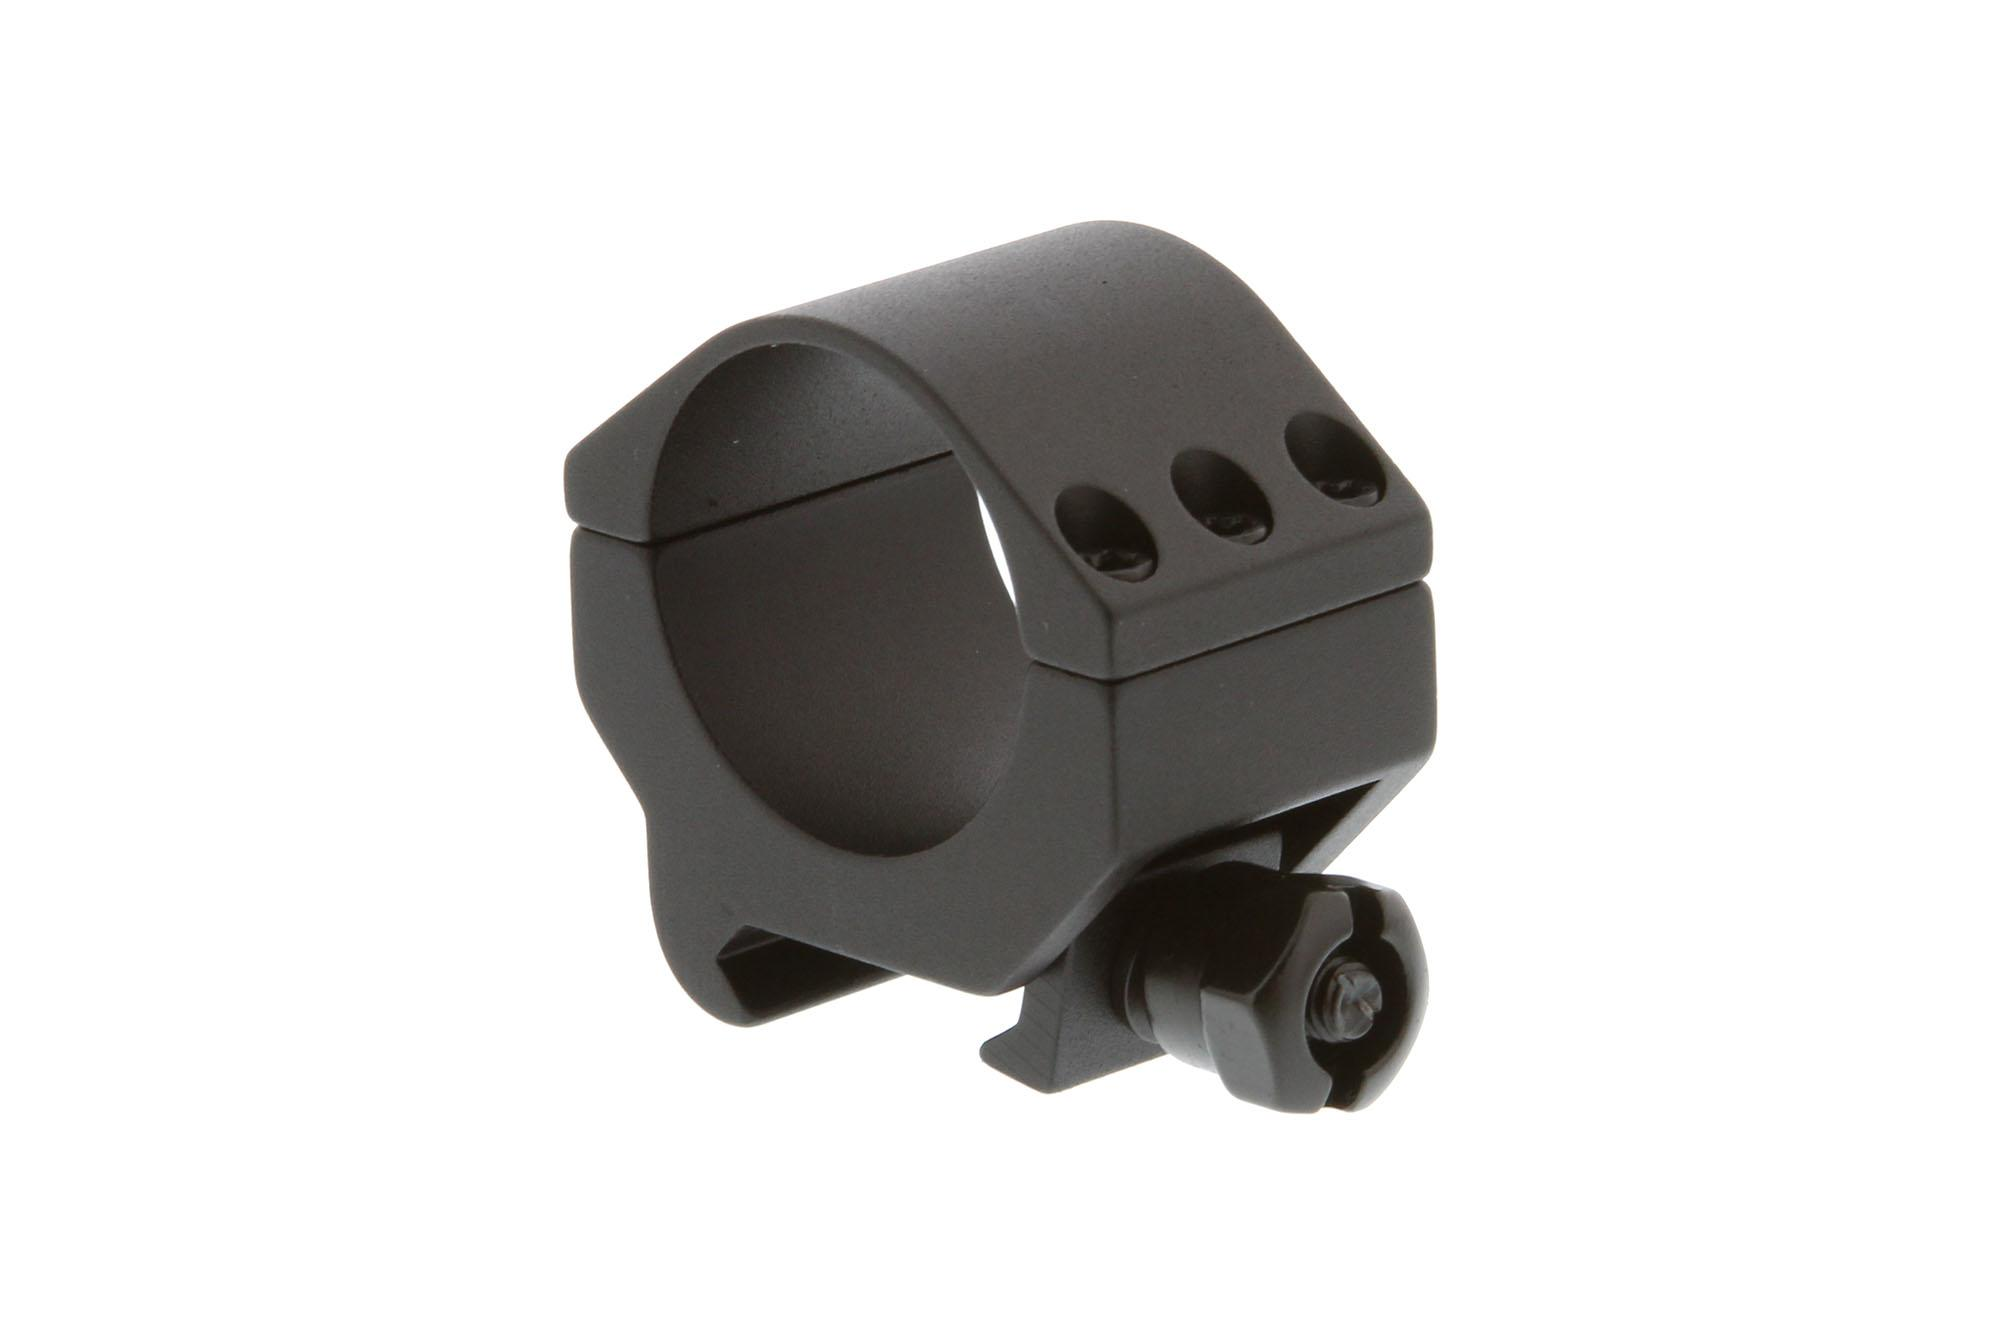 The Primary Arms 30mm low height scope ring is perfect for use on your favorite shotgun or AK